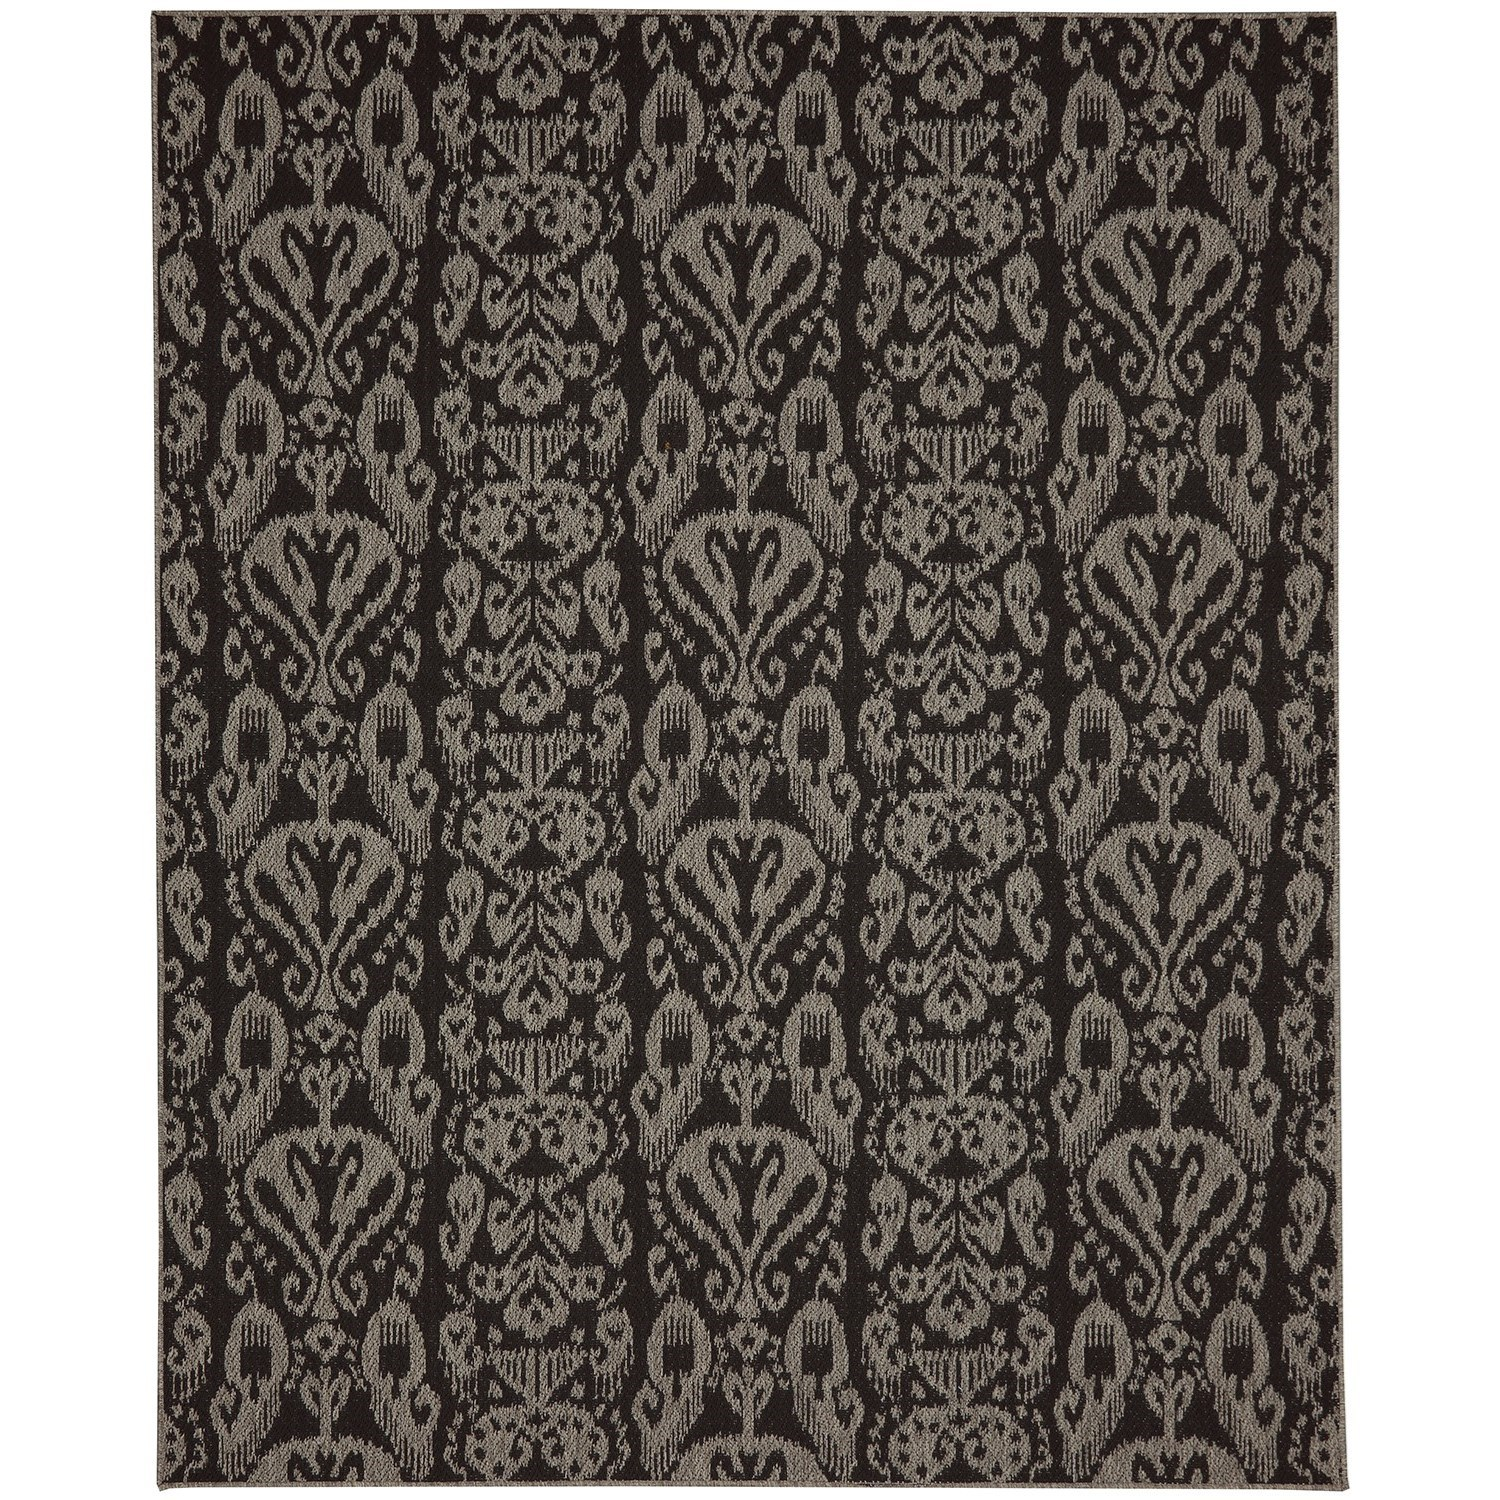 Portico 8'x10' Rectangle Ornamental Area Rug by Karastan Rugs at Story & Lee Furniture